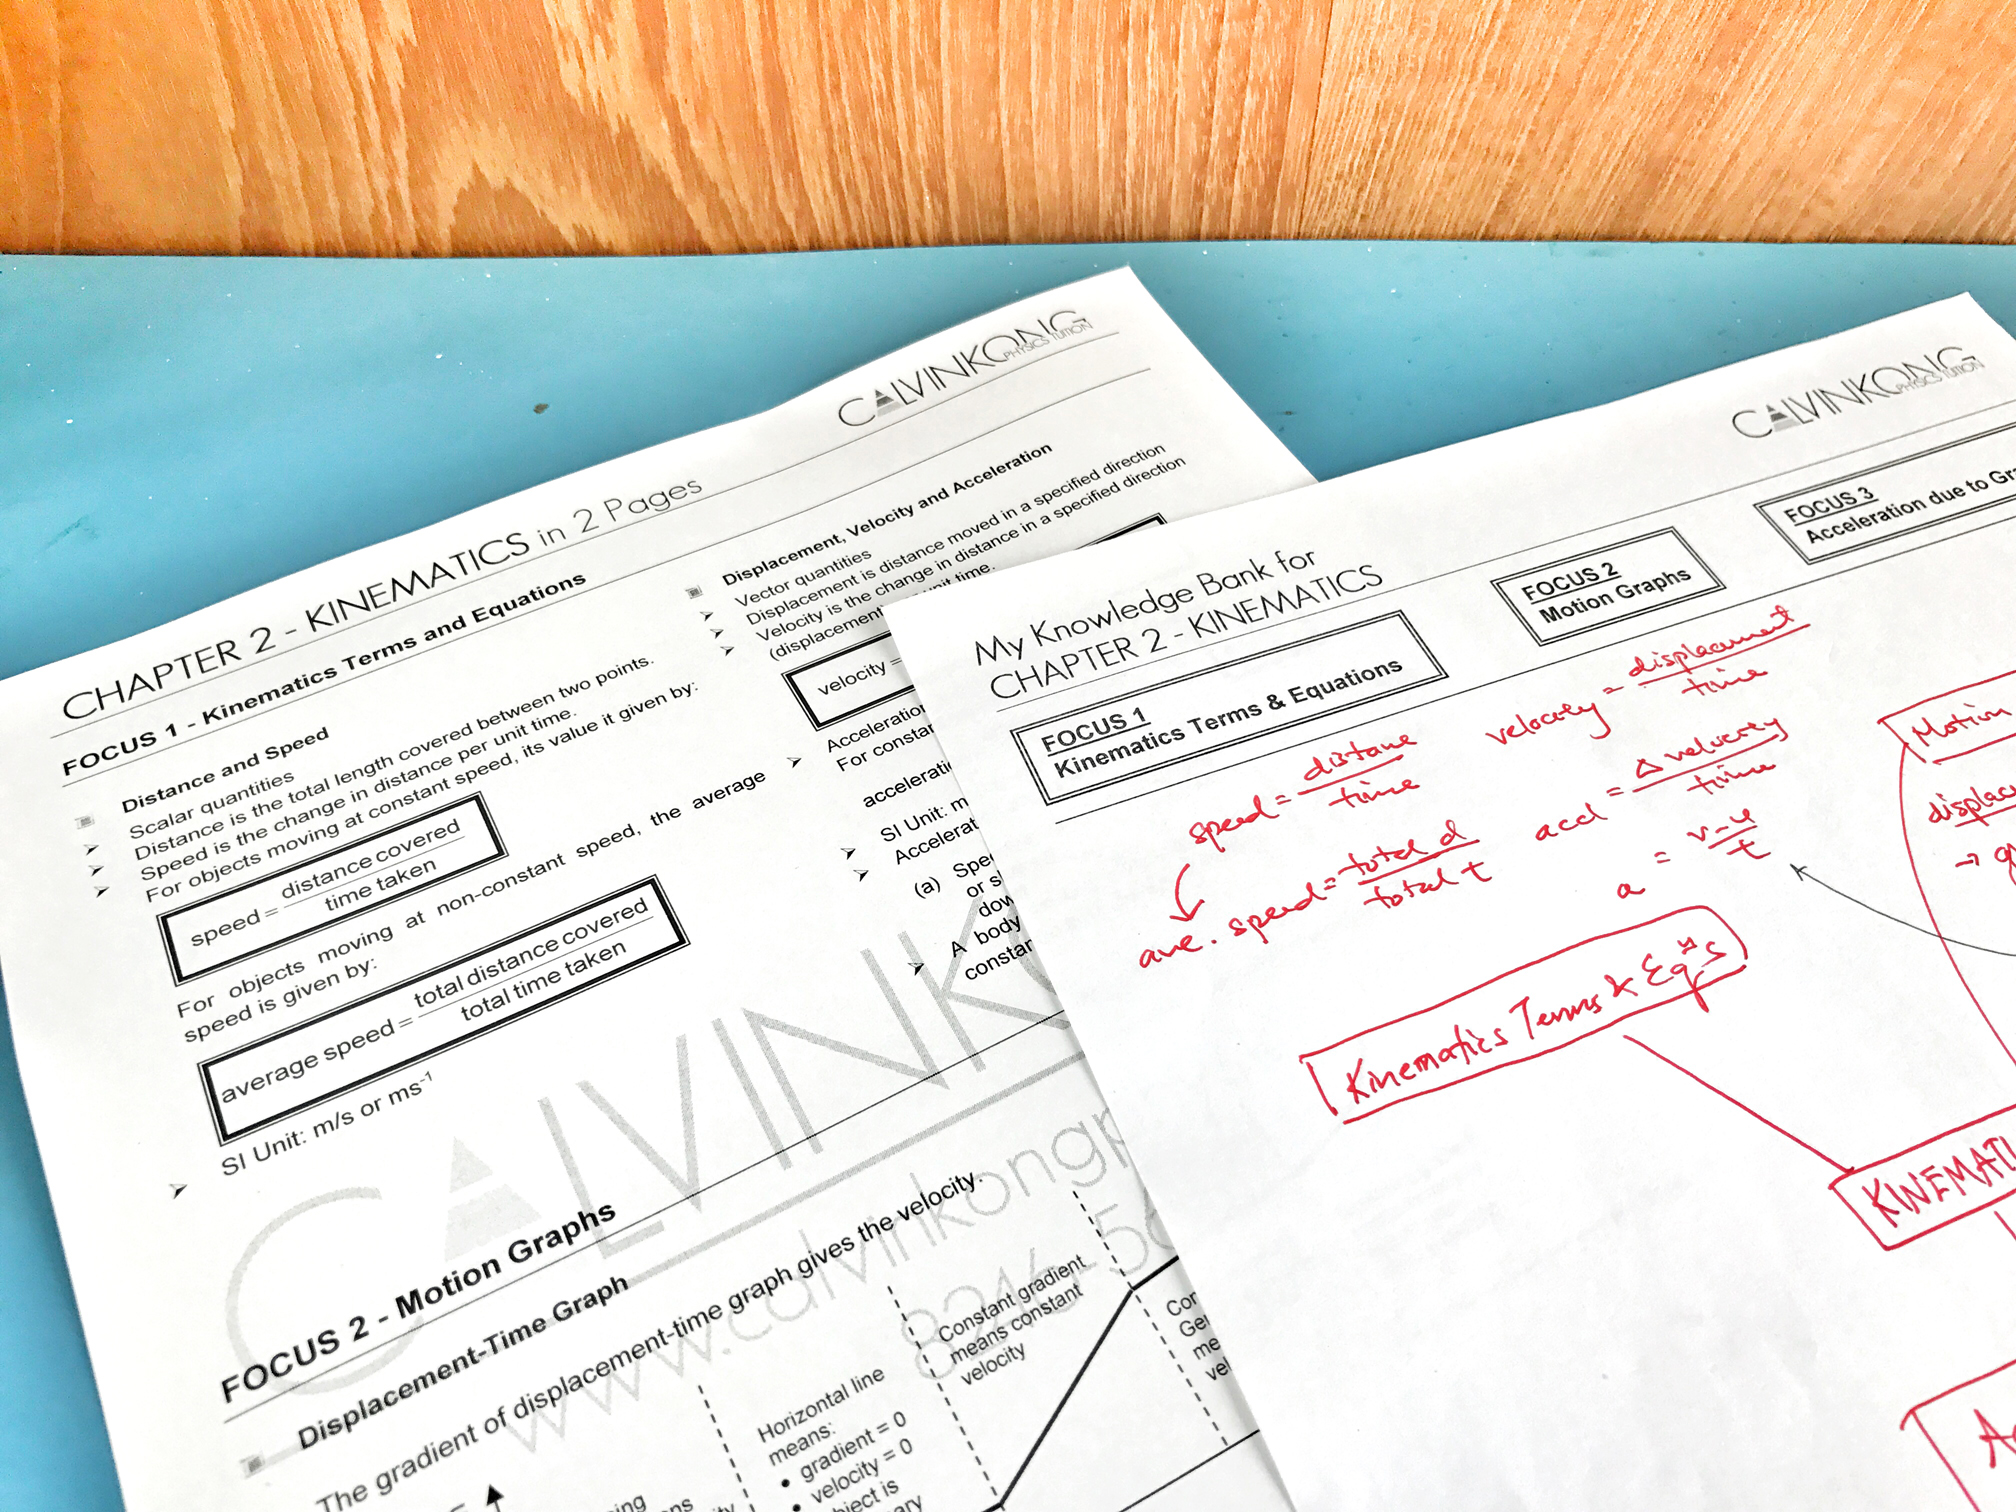 Every student's learning style is unique. This fact can easily be observed in class where some students will just listen intently while others will be taking down notes quickly. Some students prefer to file up their lesson materials by date while others will organised them by topic. There is no right or wrong method but more of a preferred method. Knowing this, Calvin Kong provides a variation of learning resources. For example, apart from his popular 2-Paged Summary for every chapter, he also provides templates for students who prefer to create their own notes.